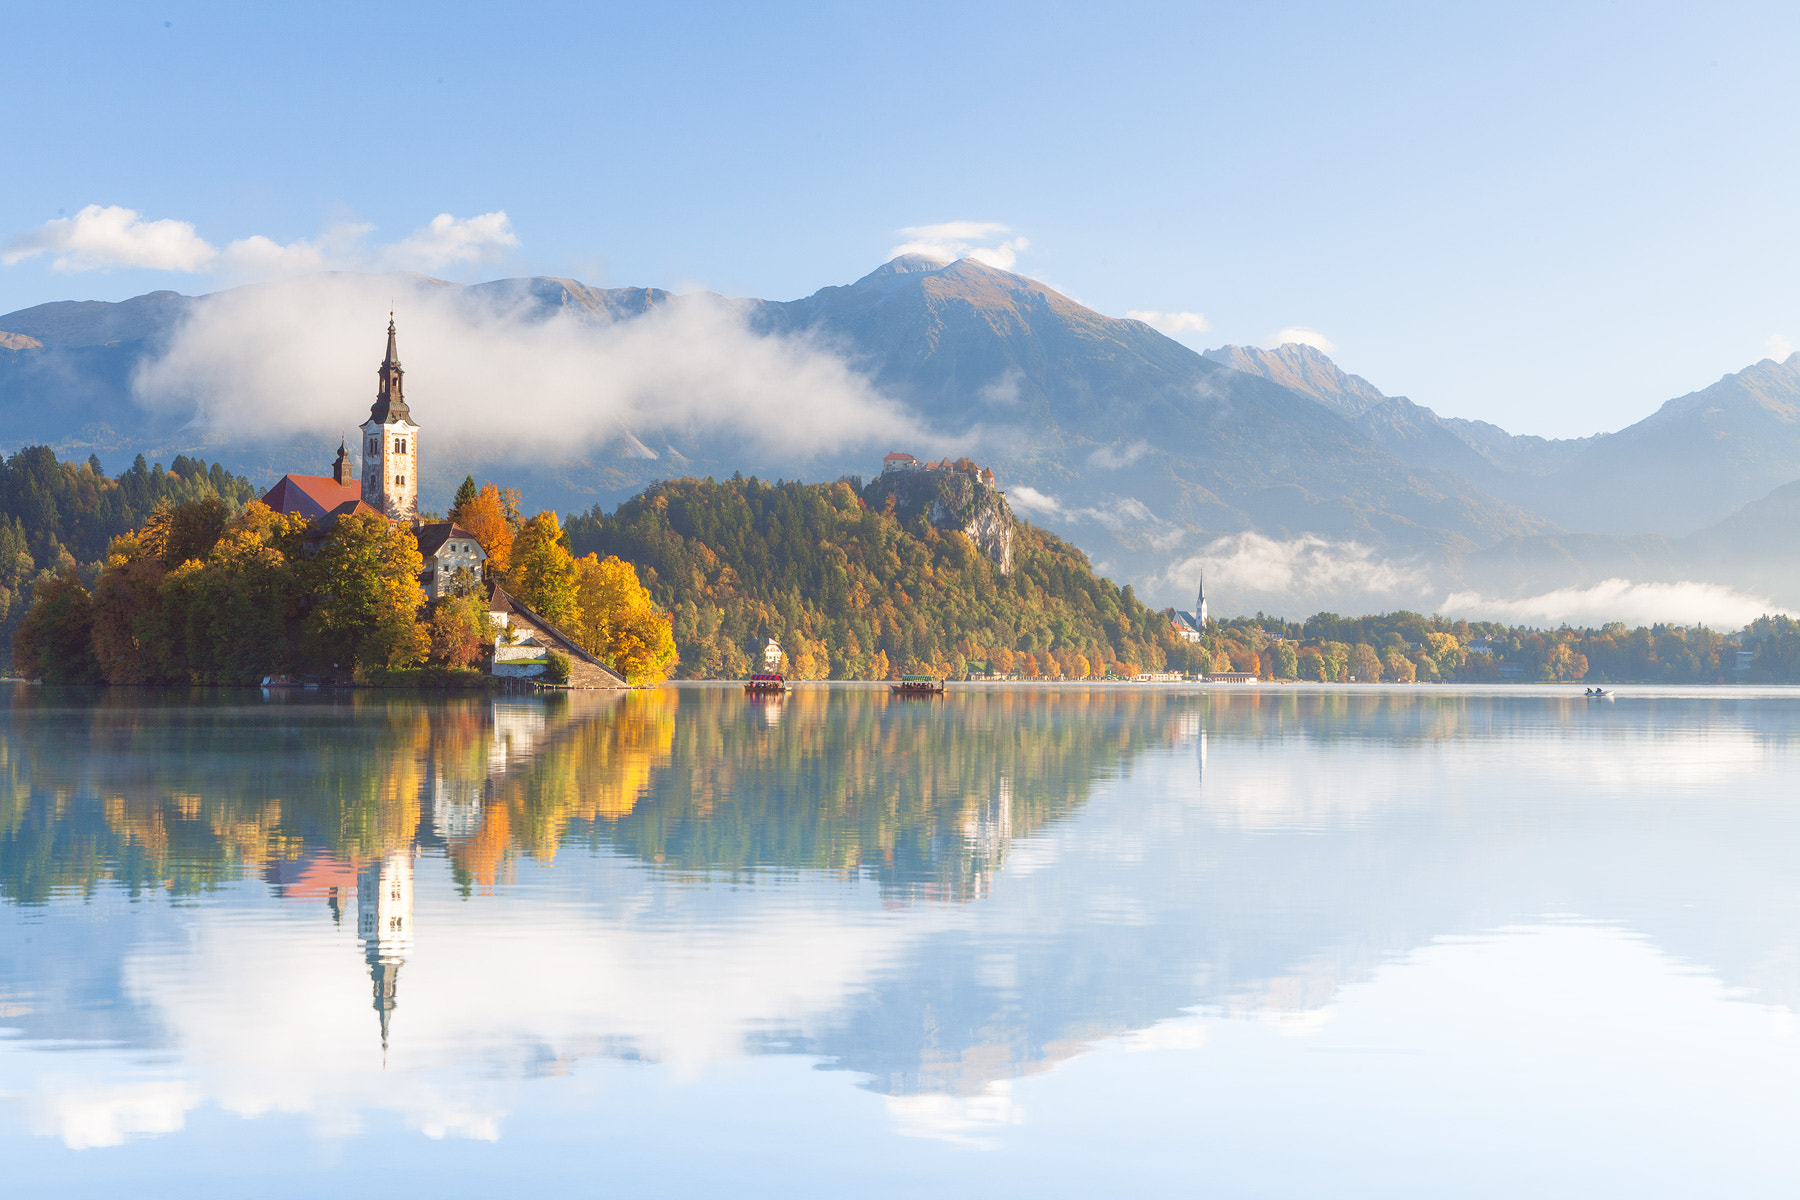 Photograph morning mist in bled by Reinhold Samonigg on 500px